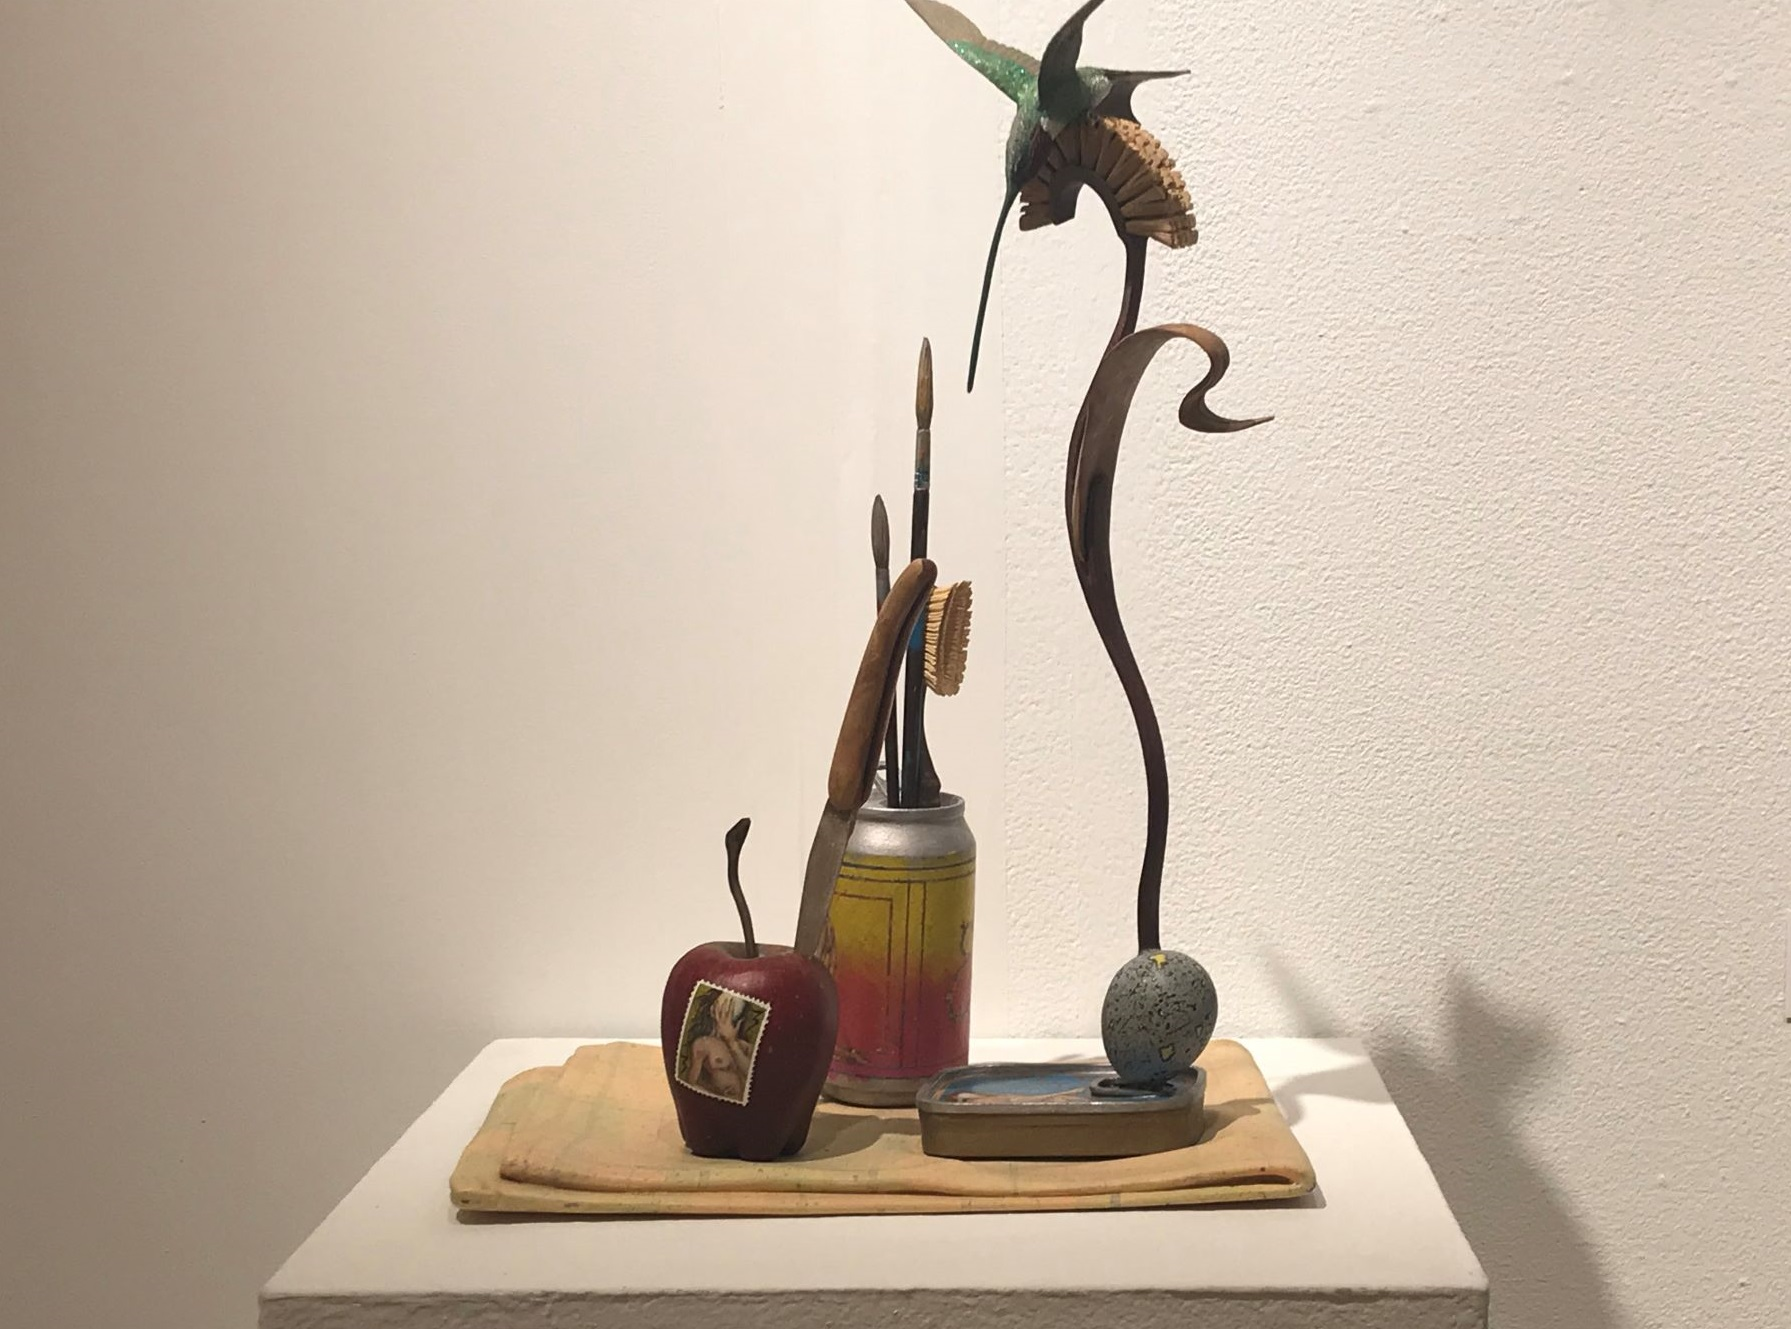 A sculpture with an apple, bird, and leaf